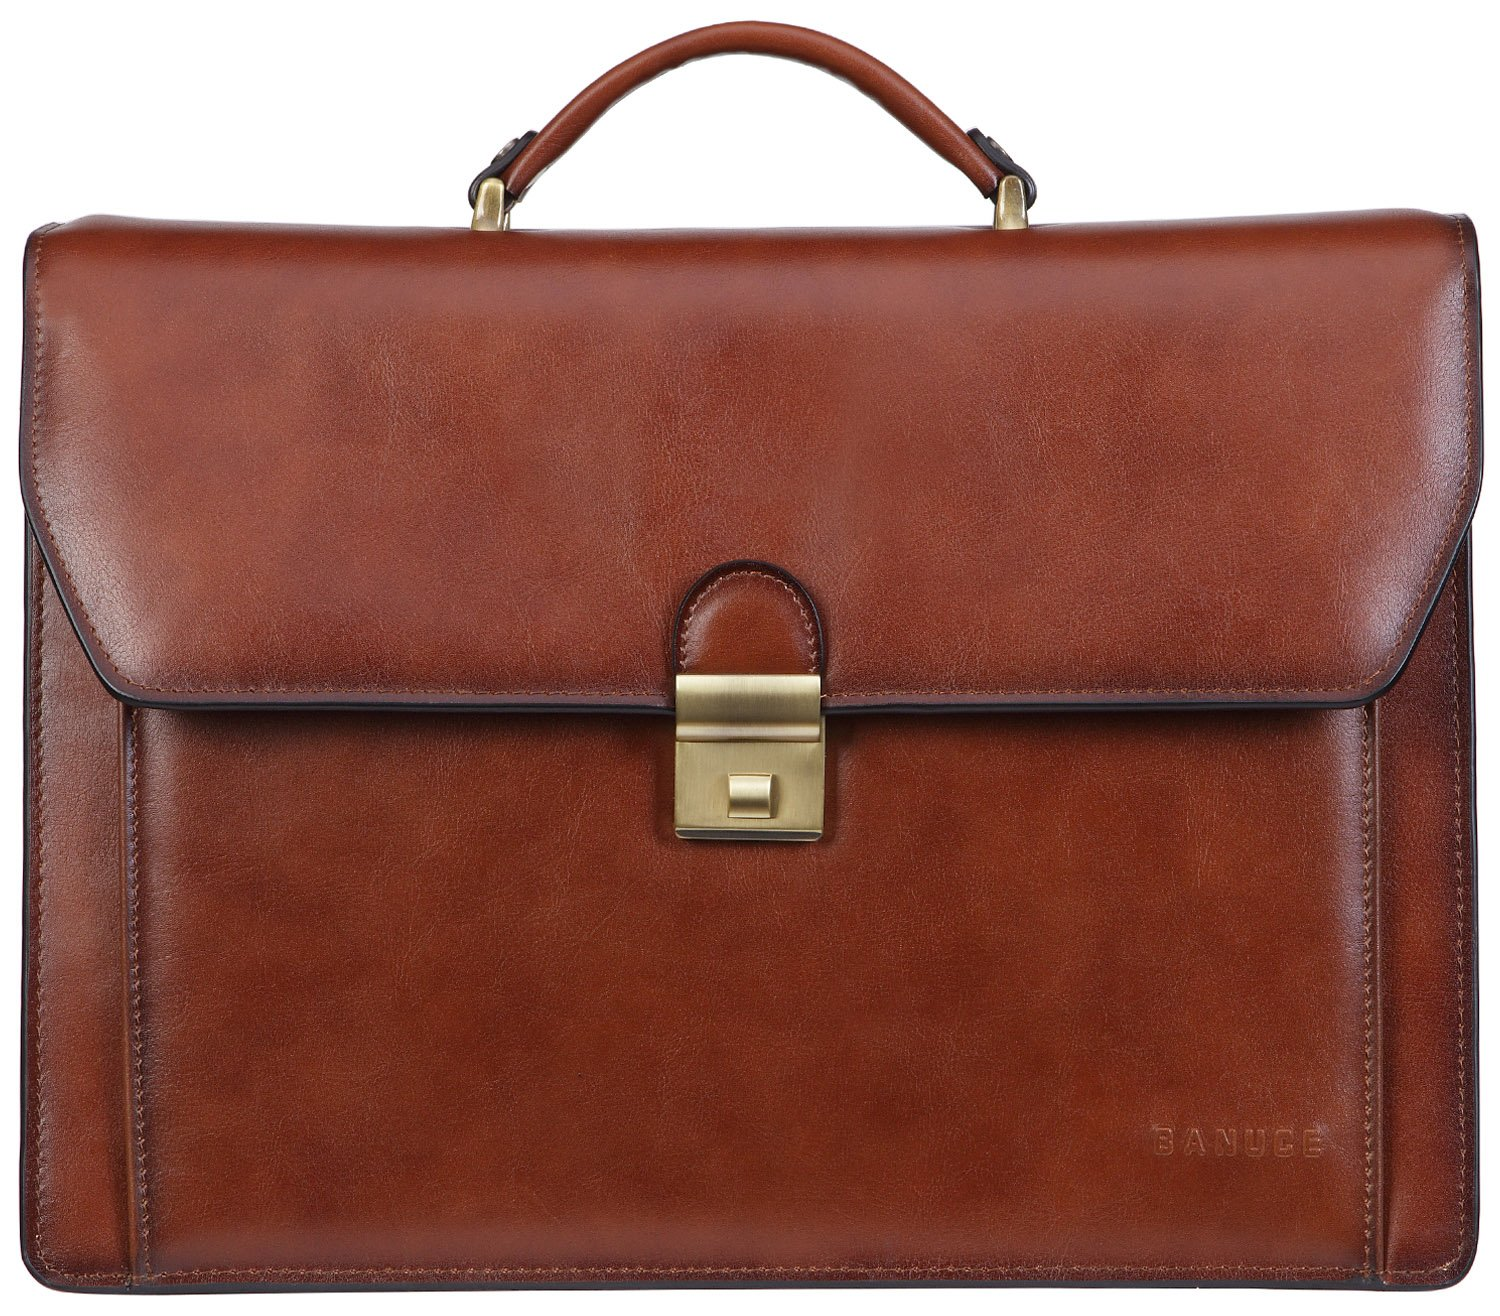 Banuce Vintage Real Leather Briefcase for Men Locking Attache Business Legal Executive Tote 14 inch Laptop Messenger Bag Brown